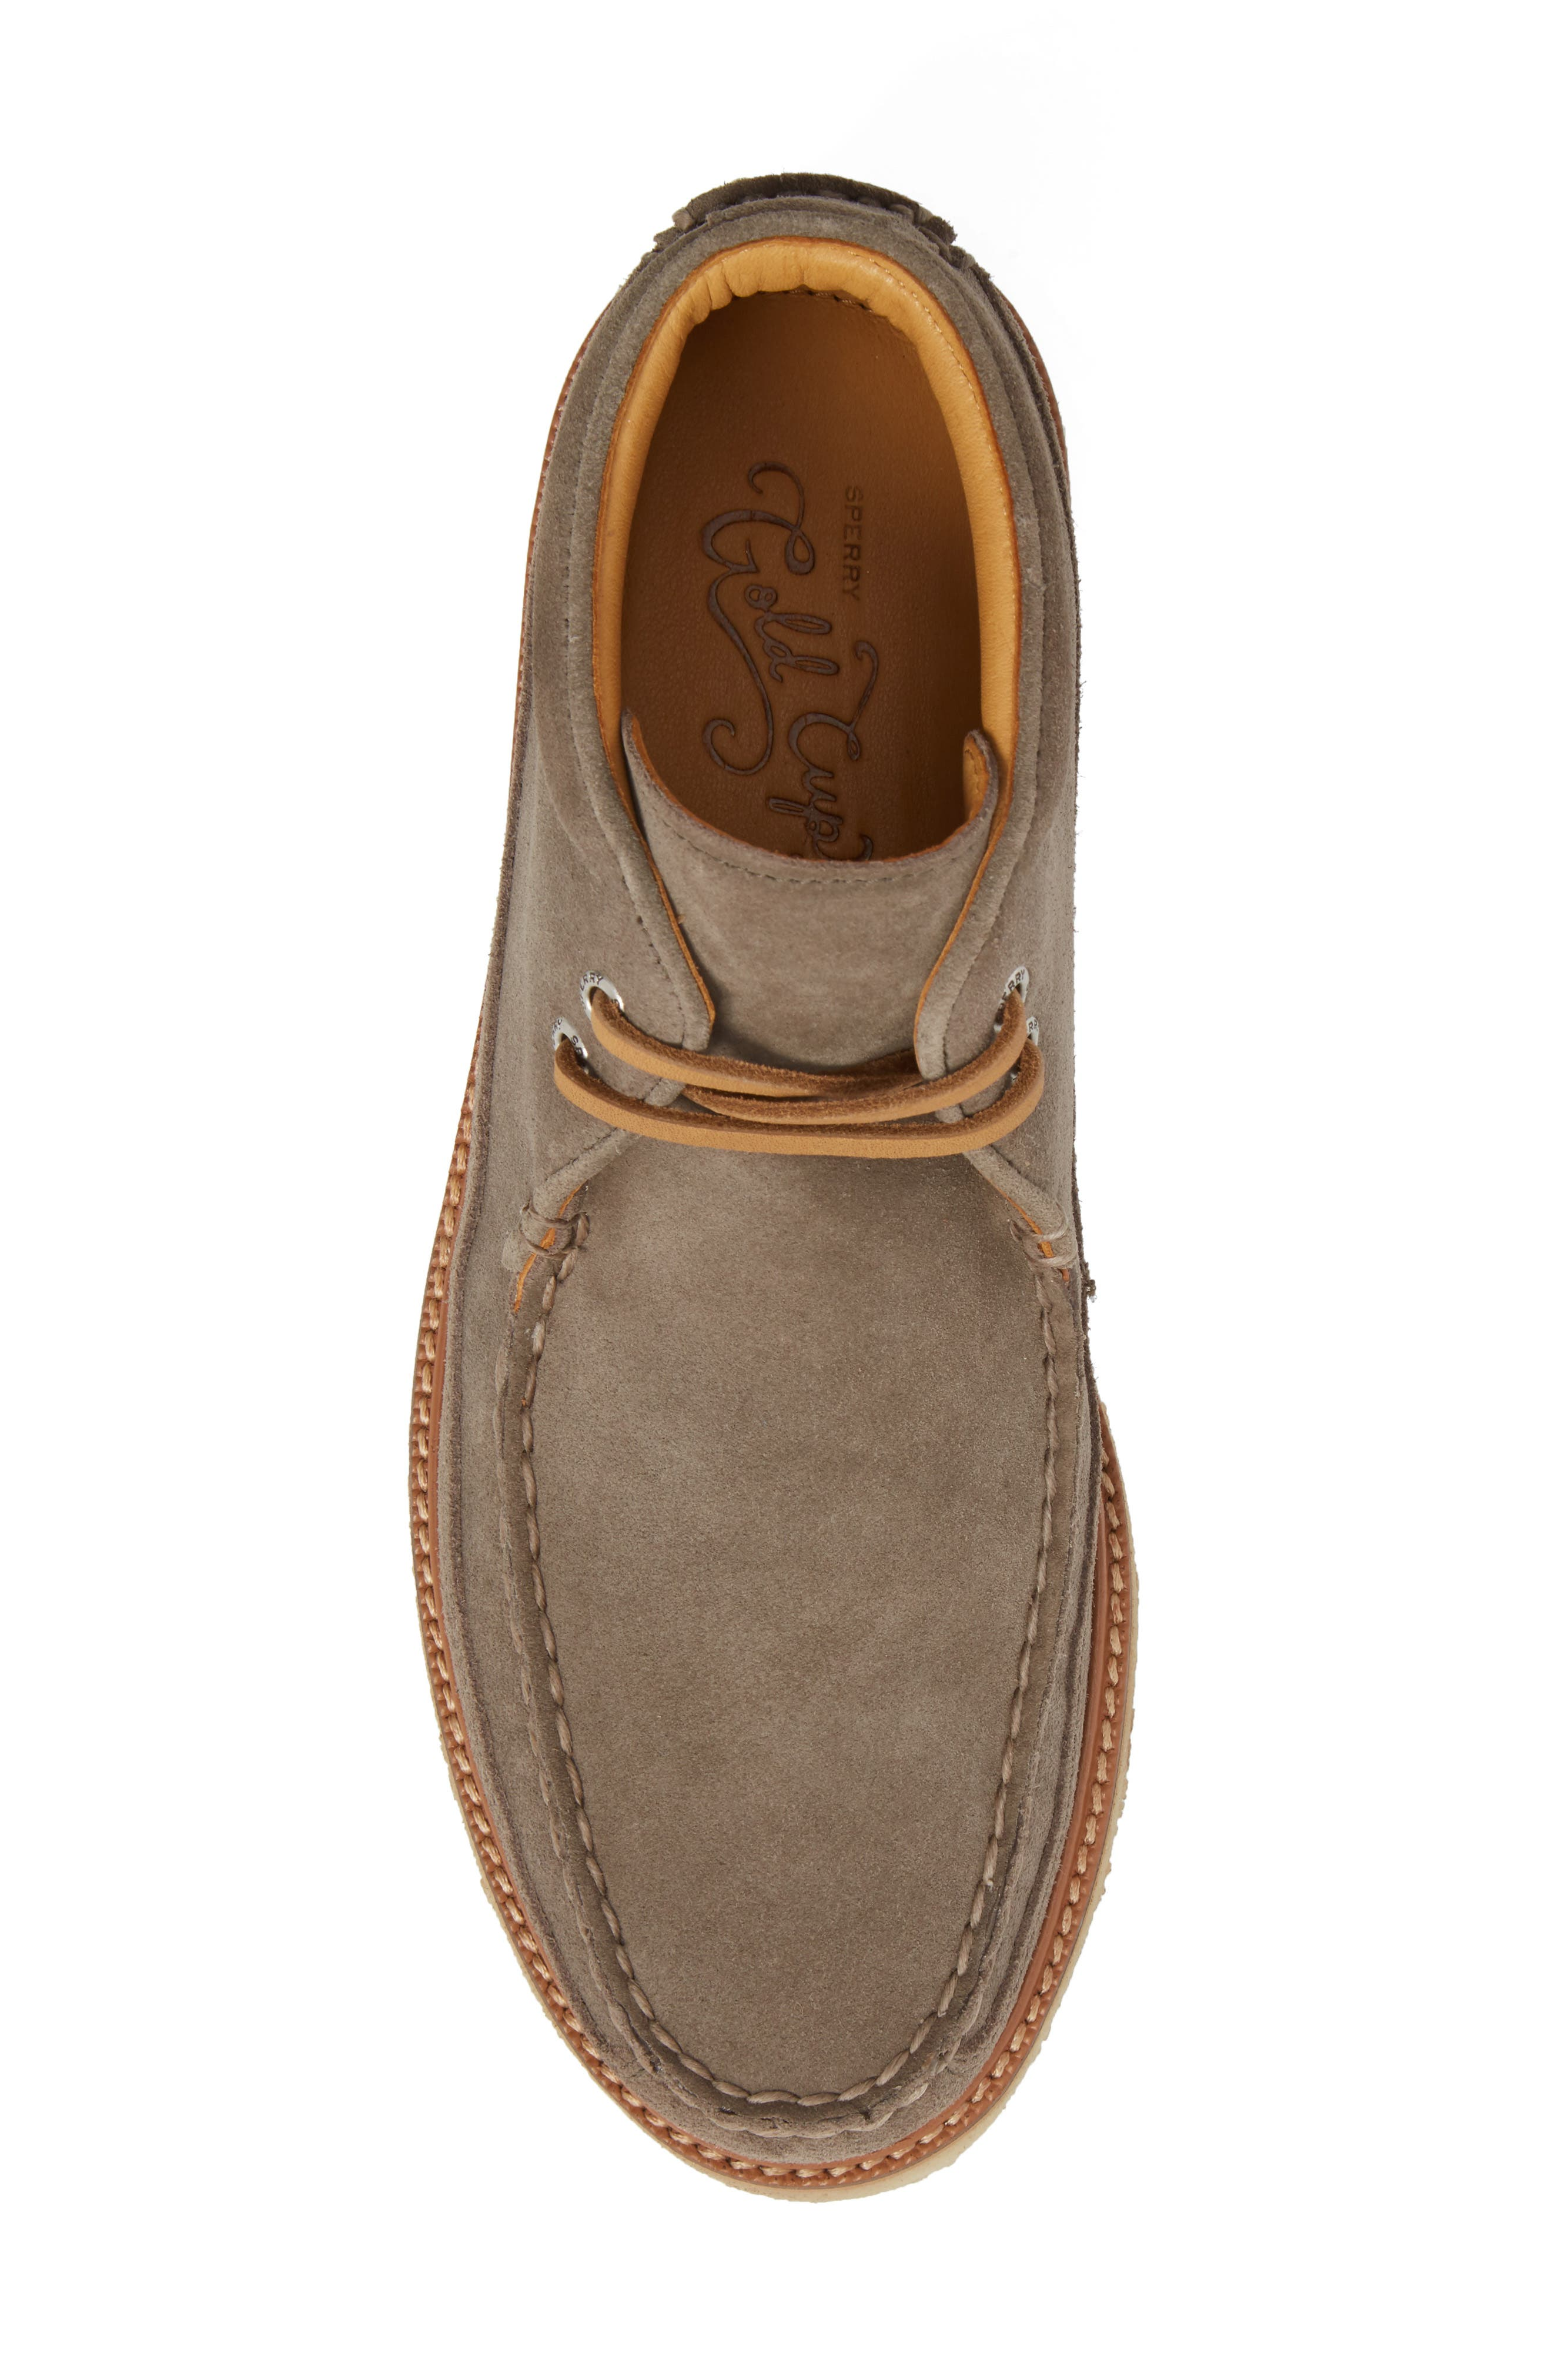 Gold Cup Chukka Boot,                             Alternate thumbnail 5, color,                             Taupe Grey Leather/ Suede